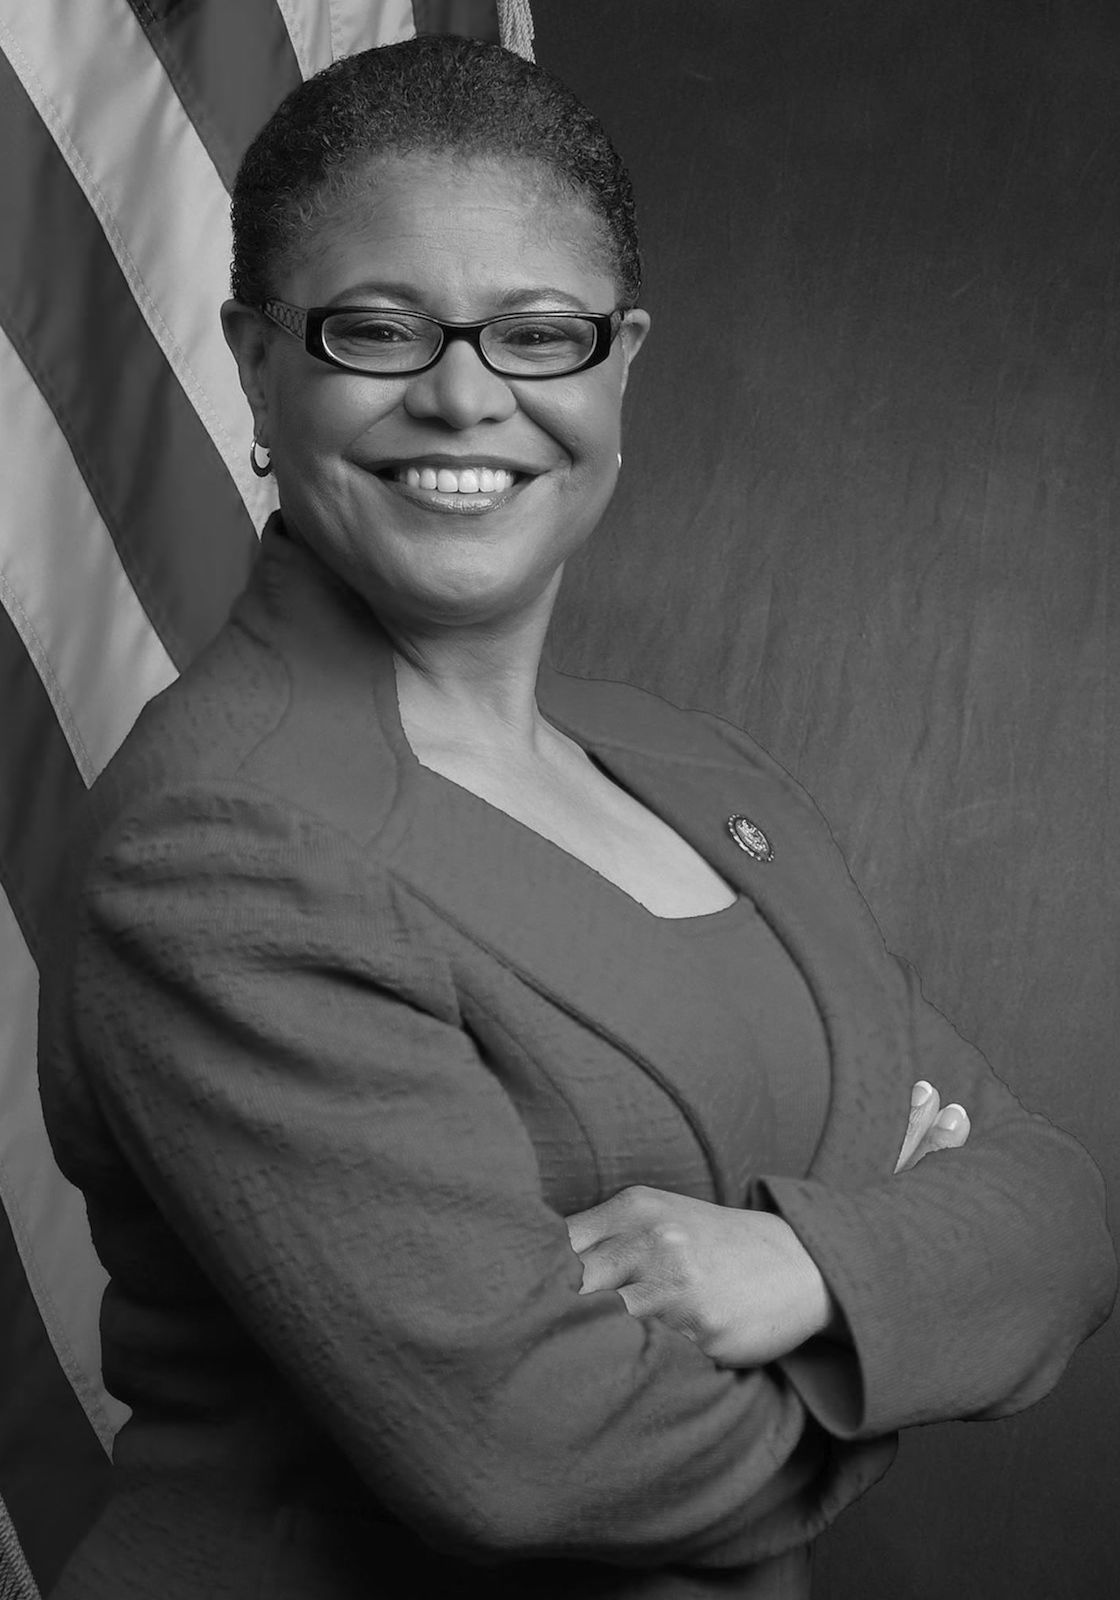 Karen Bass, Willoughby Avenue, The Five Fifths, KOLUMN Magazine, KOLUMN, African American Politics, Black in Politics